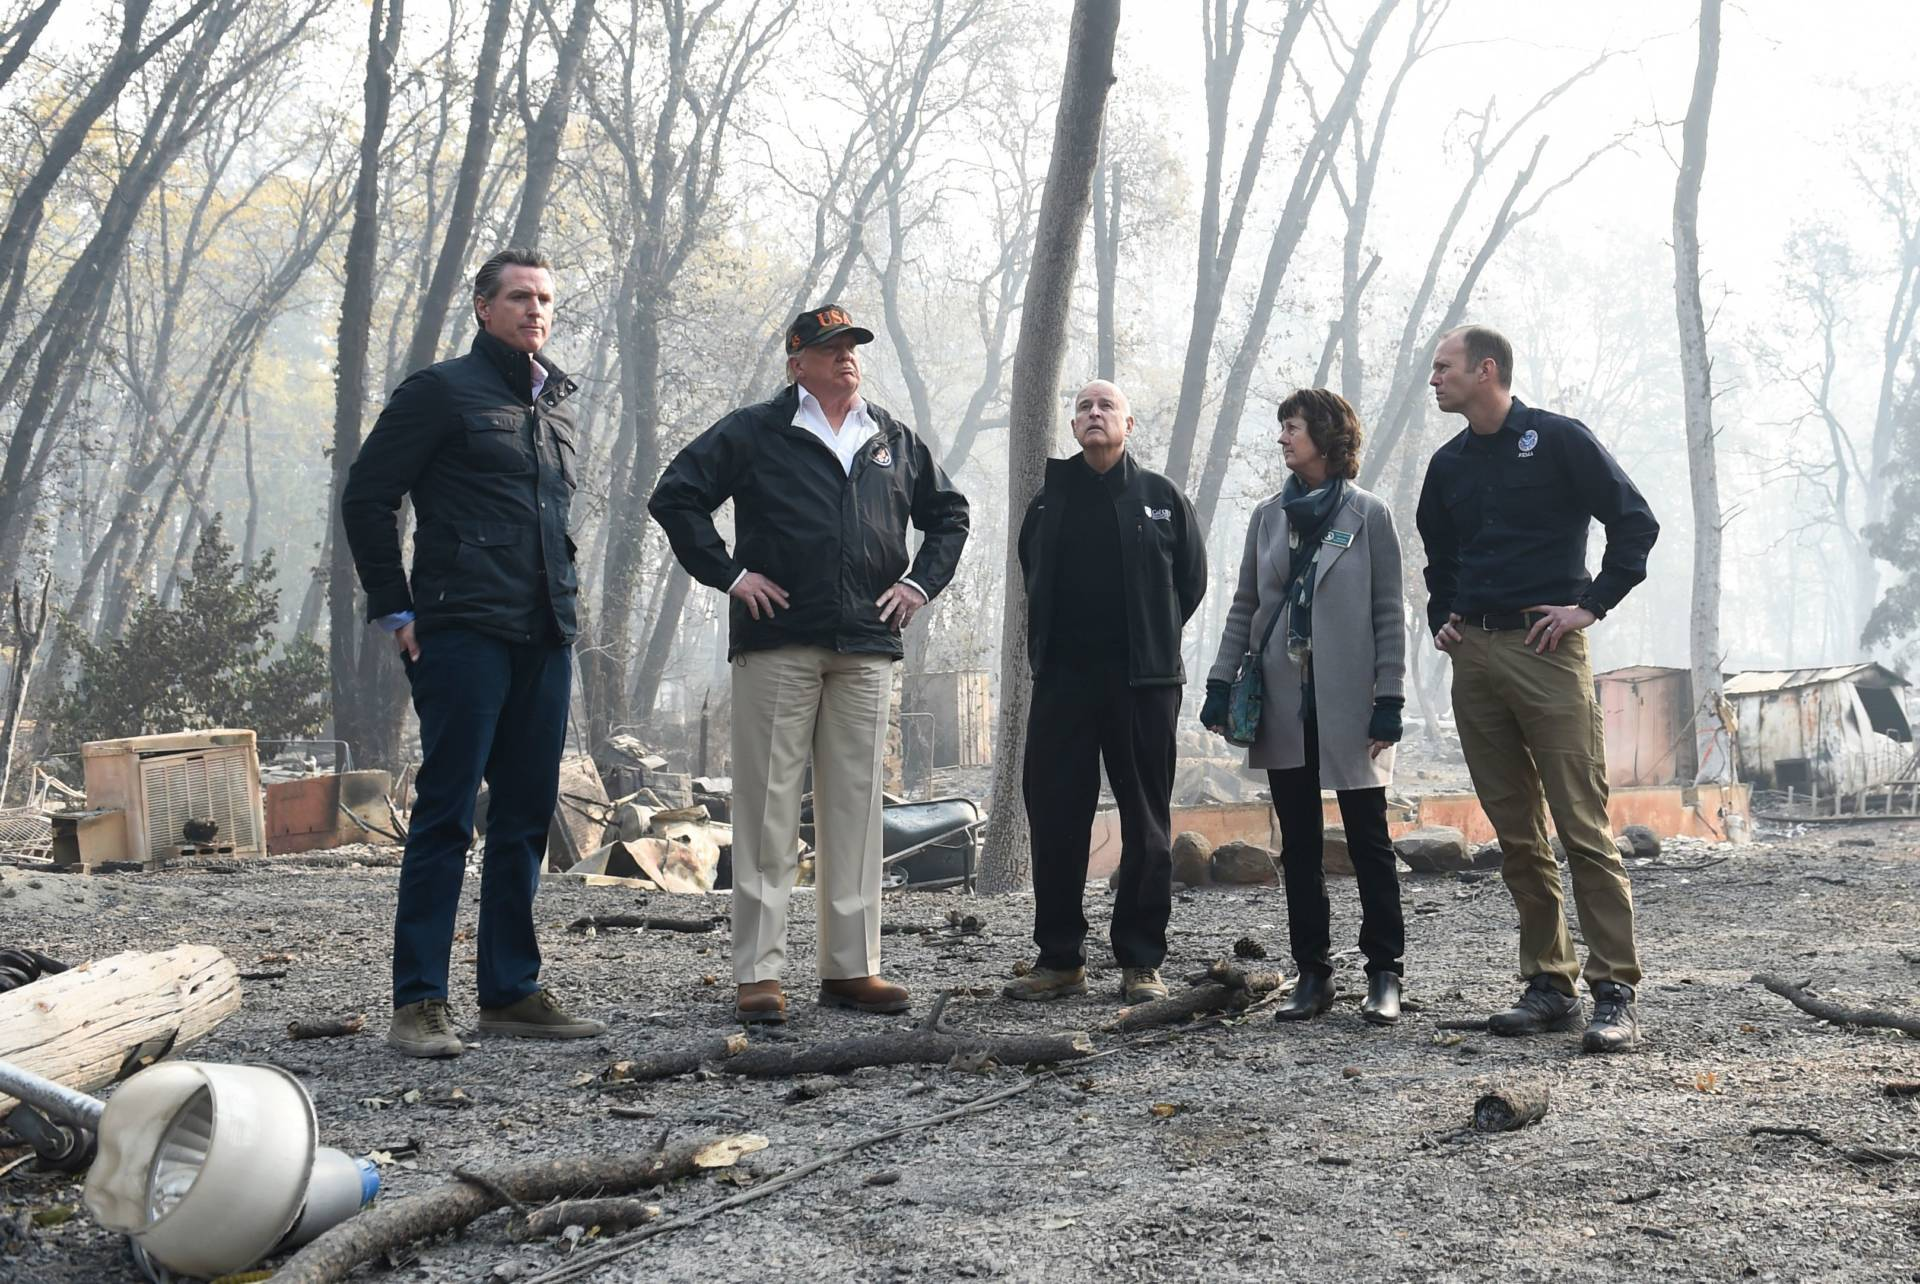 US President Donald Trump (2L) looks on with Paradise Mayor Jody Jones (2R), Governor of California Jerry Brown (C), Administrator of the Federal Emergency Management Agency, Brock Long (R), and Lieutenant Governor of California, Gavin Newson, as they view damage from wildfires in Paradise, California on November 17, 2018. - President Donald Trump arrived in California to meet with officials, victims and the 'unbelievably brave' firefighters there, as more than 1,000 people remain listed as missing in the worst-ever wildfire to hit the US state. SAUL LOEB/AFP/Getty Images